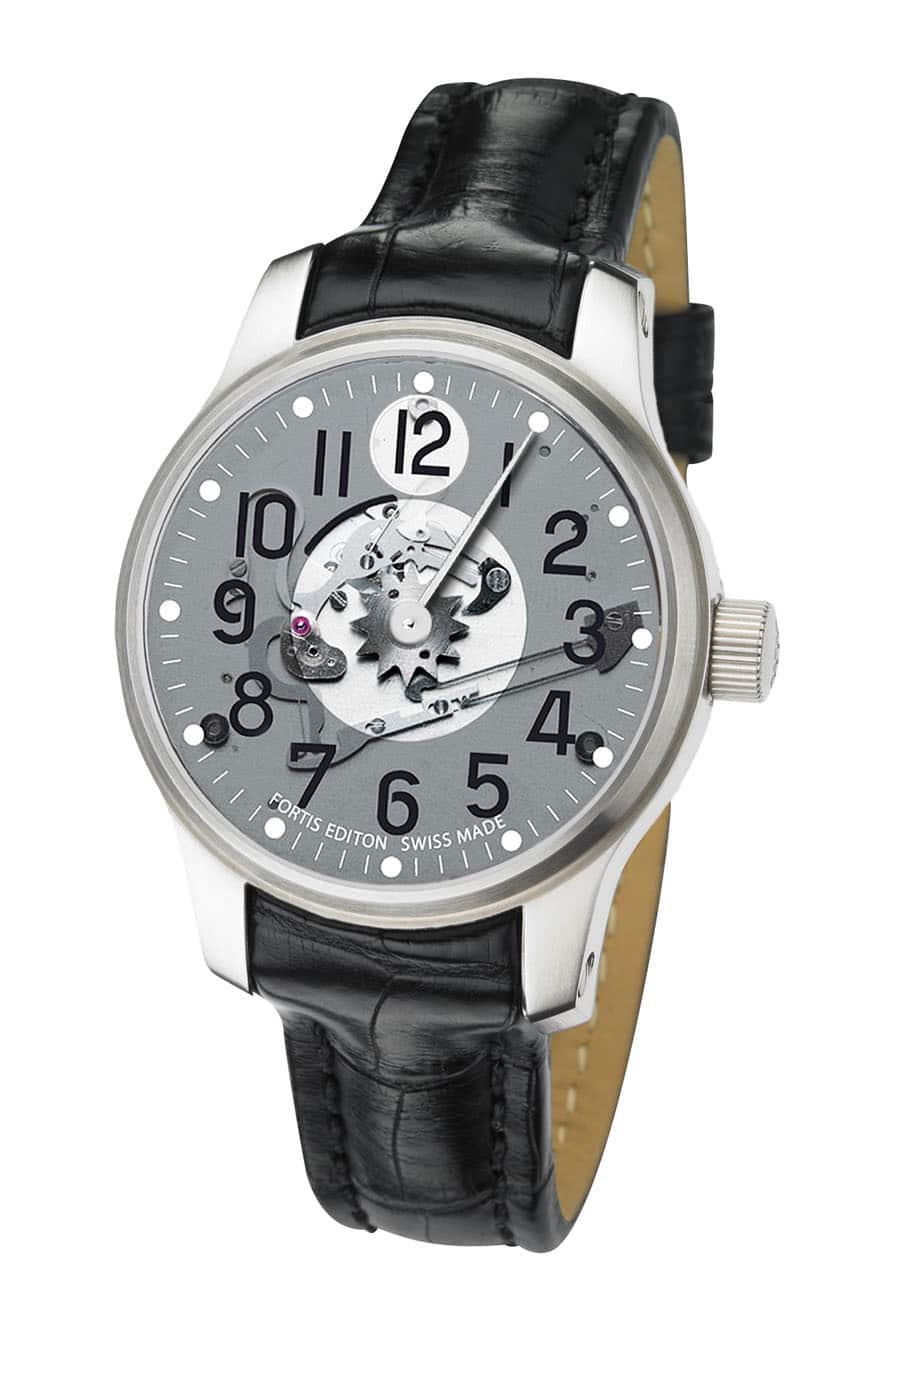 Fortis Jumping Hour transparentes Zifferblatt